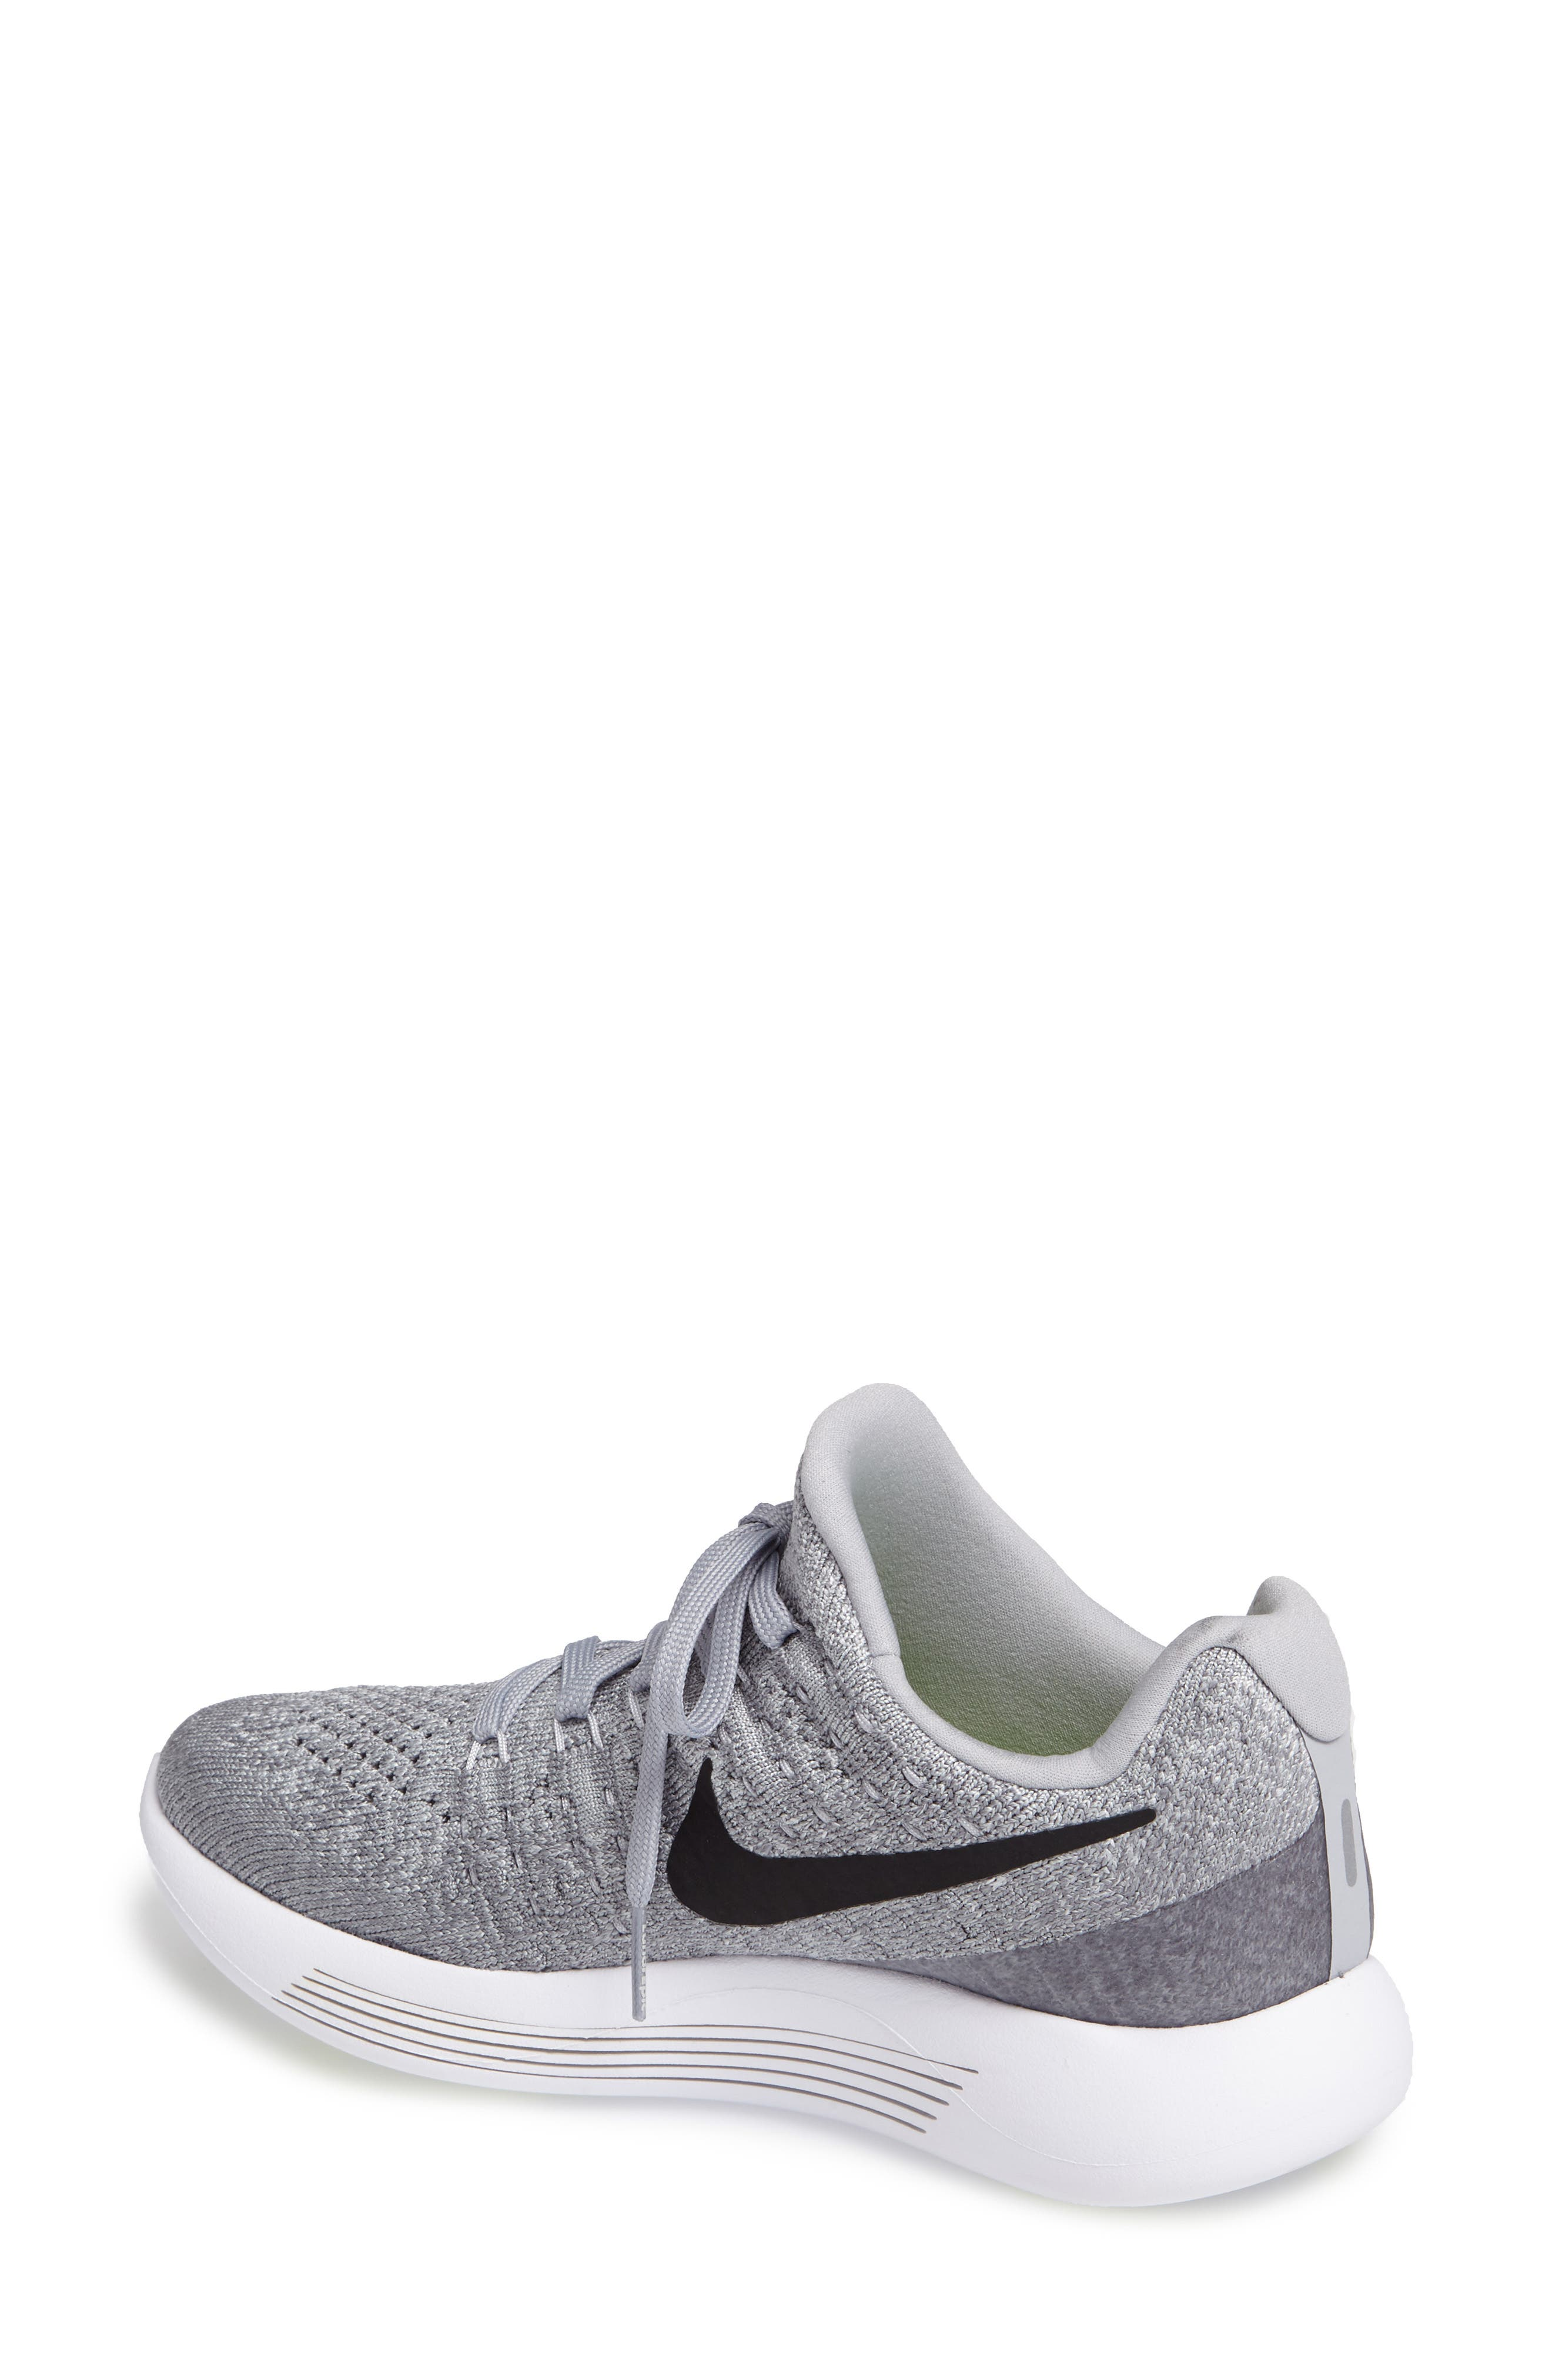 Alternate Image 2  - Nike LunarEpic Low Flyknit 2 Running Shoe (Women)